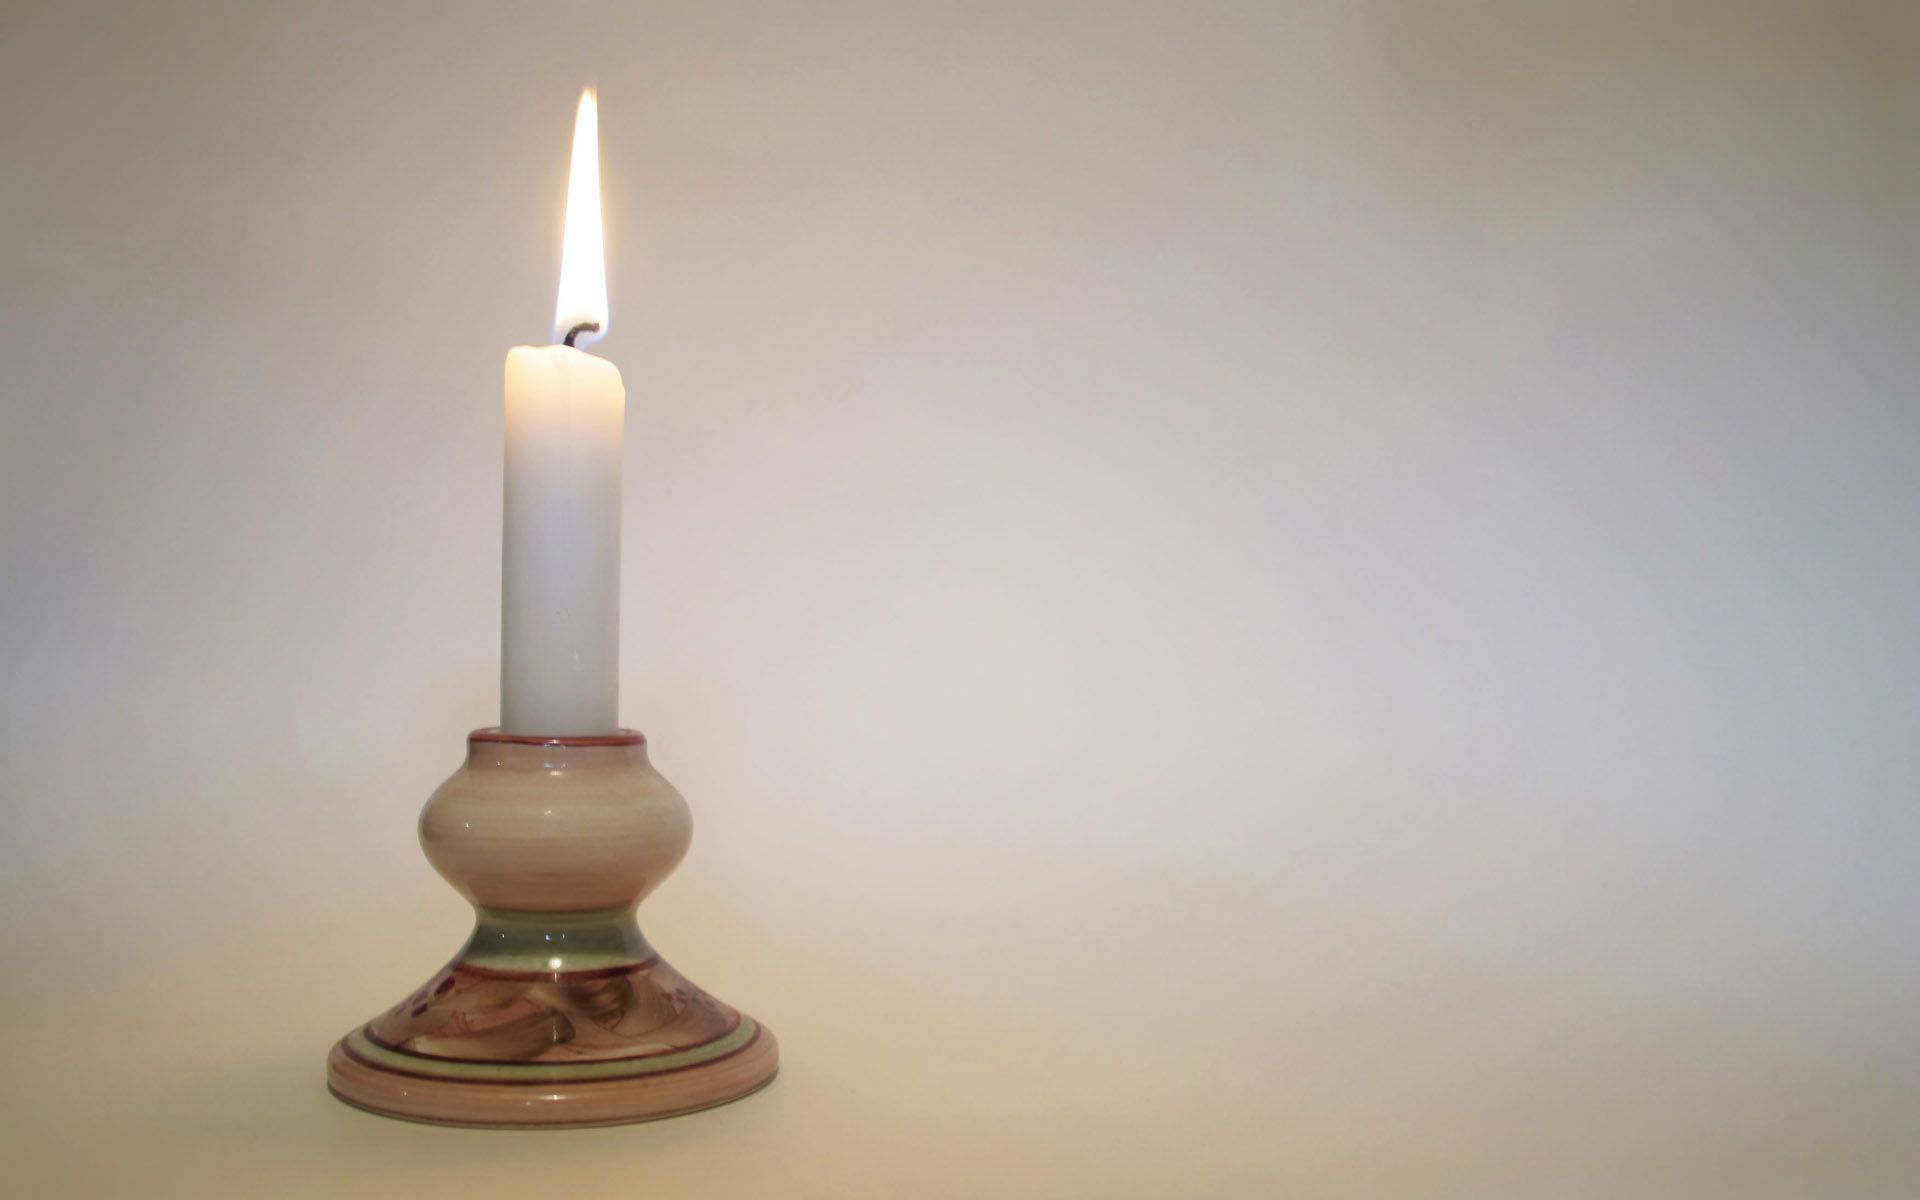 pictures of burning candles